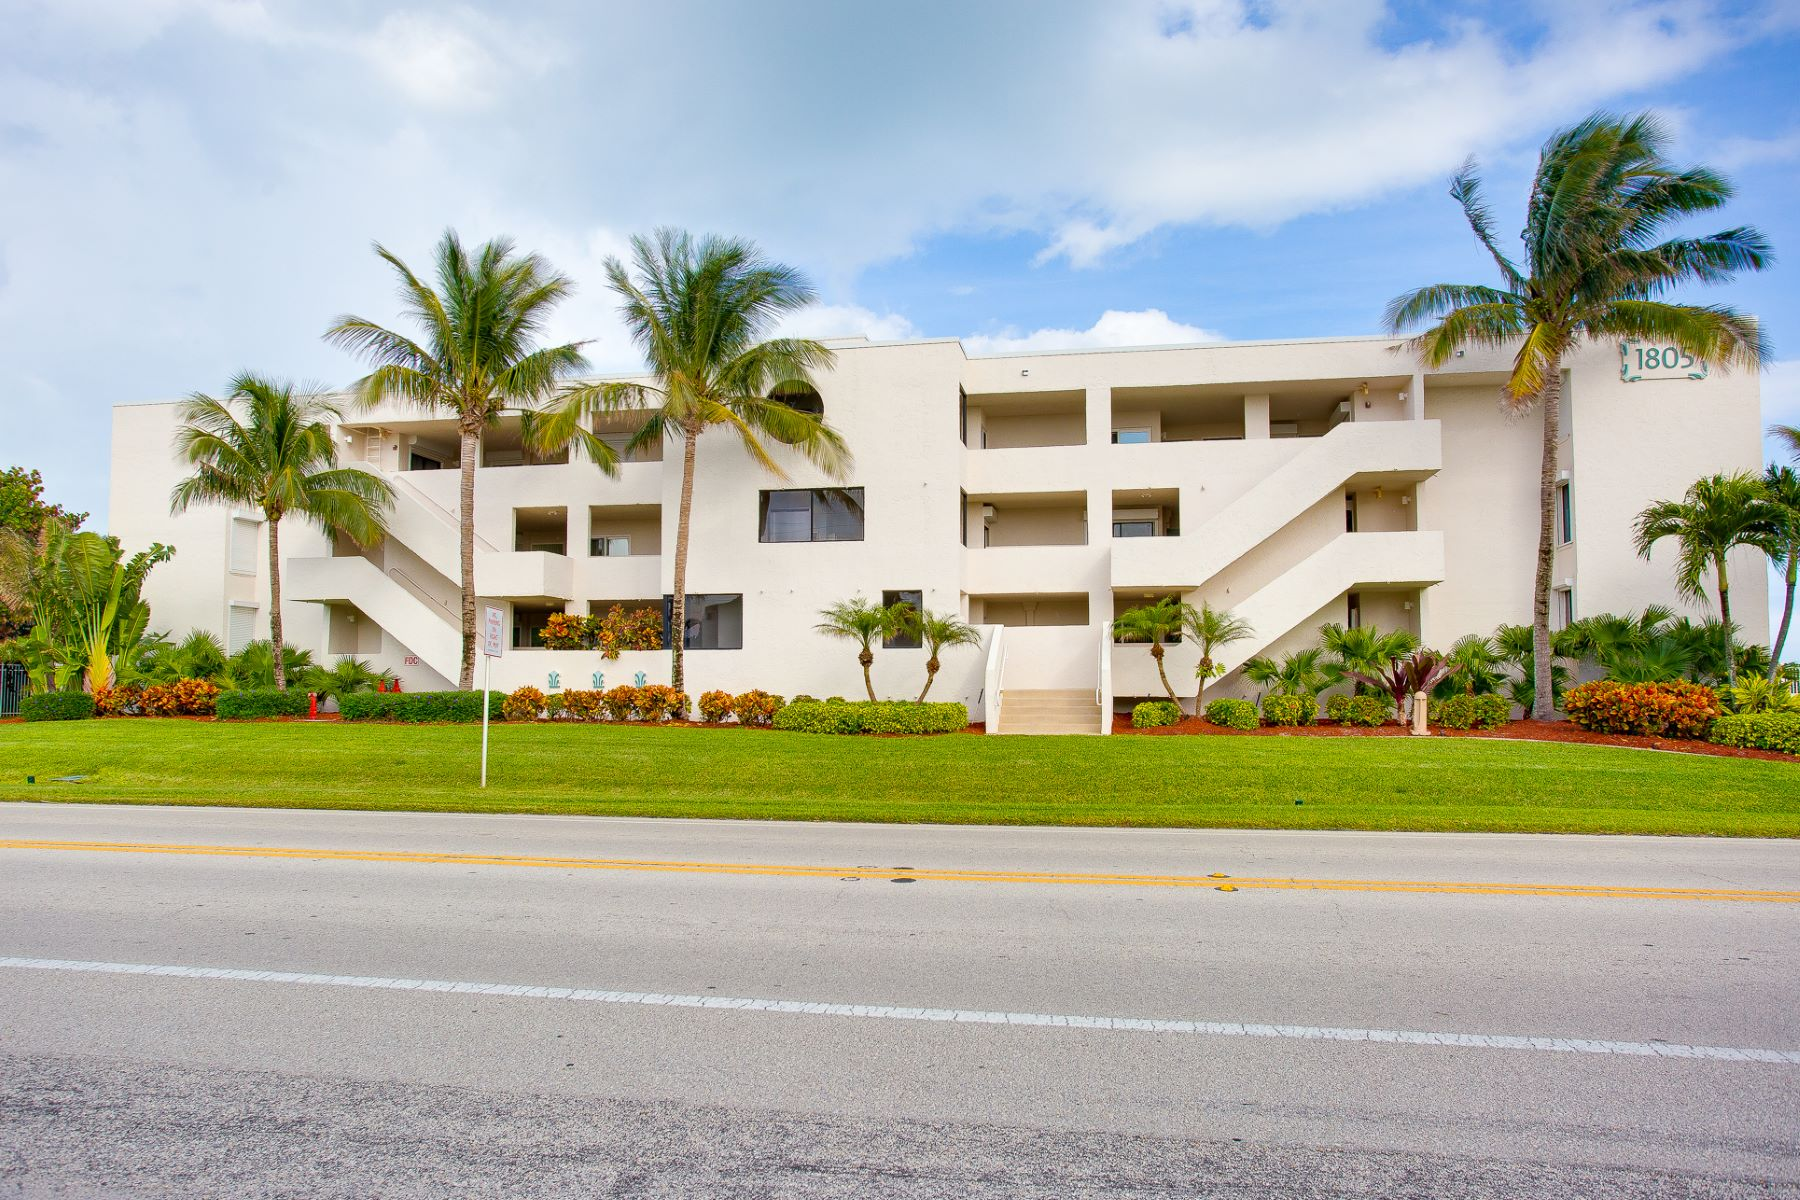 Totally Updated Oceanfront Condo 1805 Atlantic Street 122 Melbourne Beach, Florida 32951 Stati Uniti